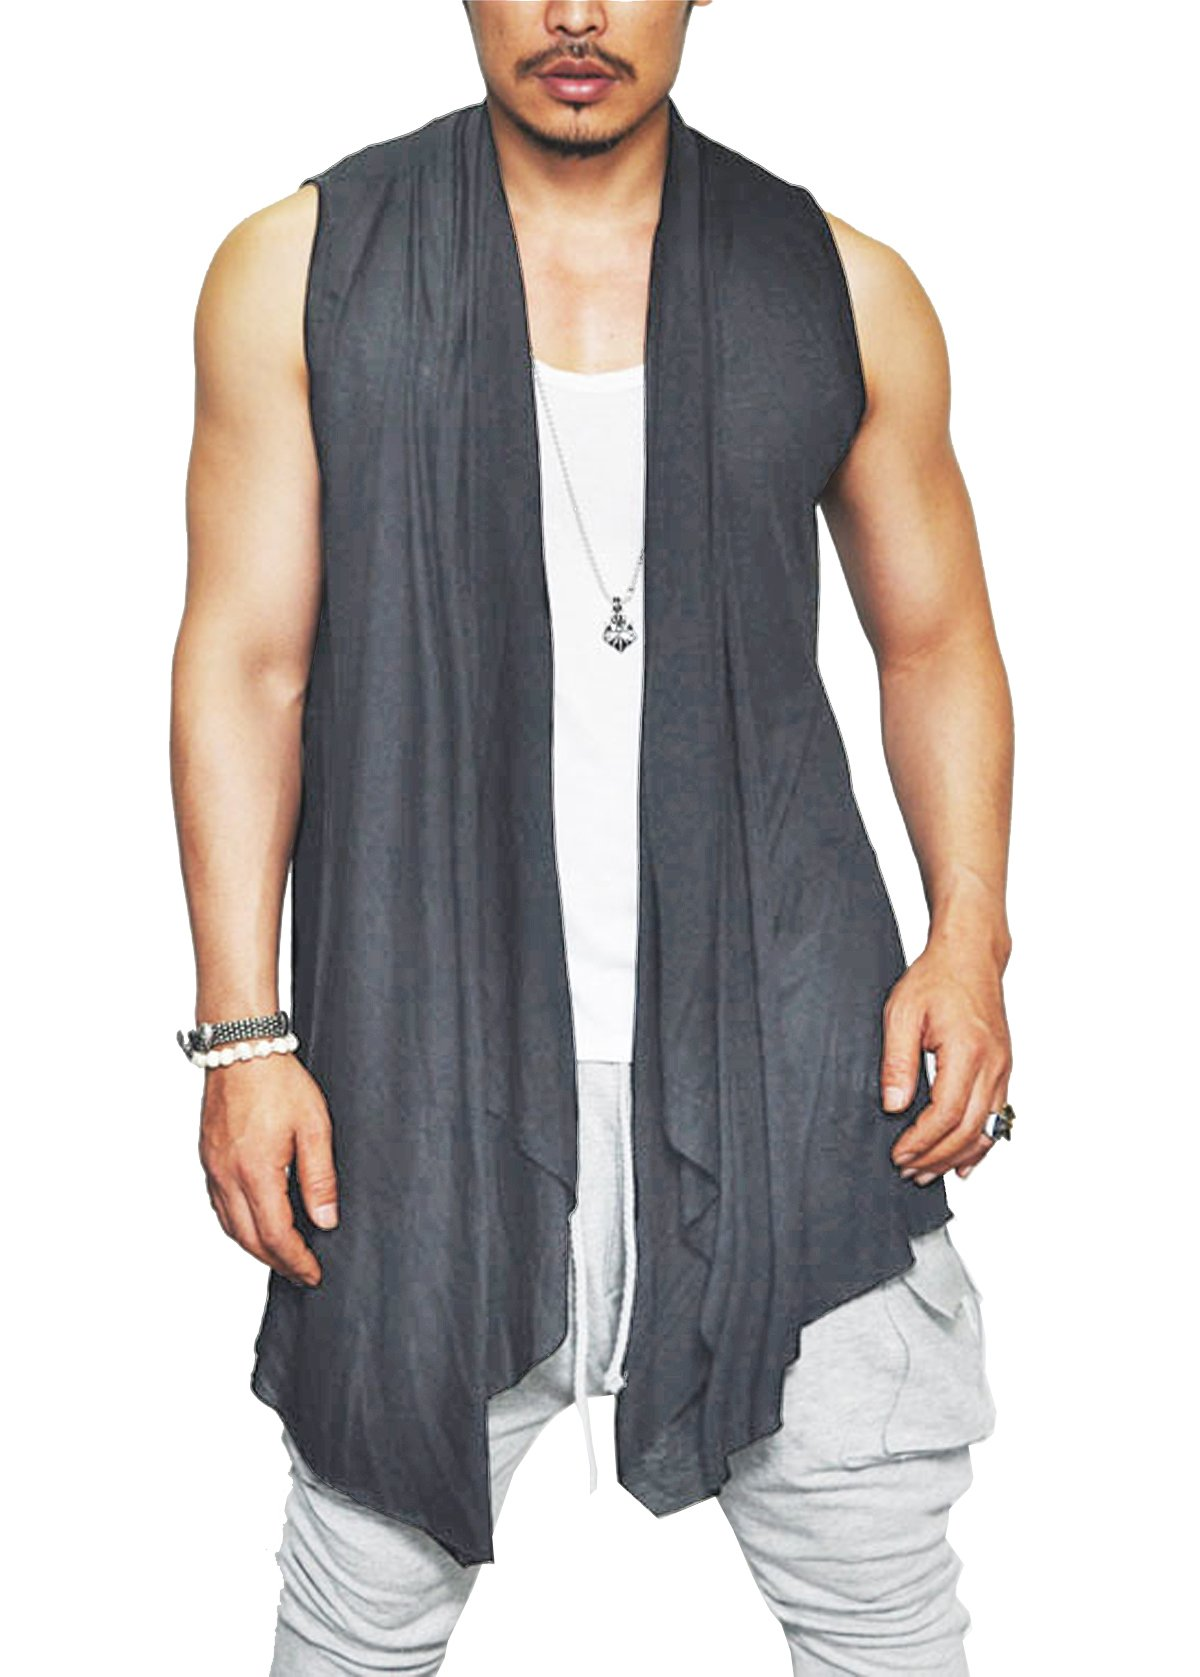 Coofandy Mens Ruffle Shawl Collar Sleeveless Long Cardigan Vest, Grey, Large